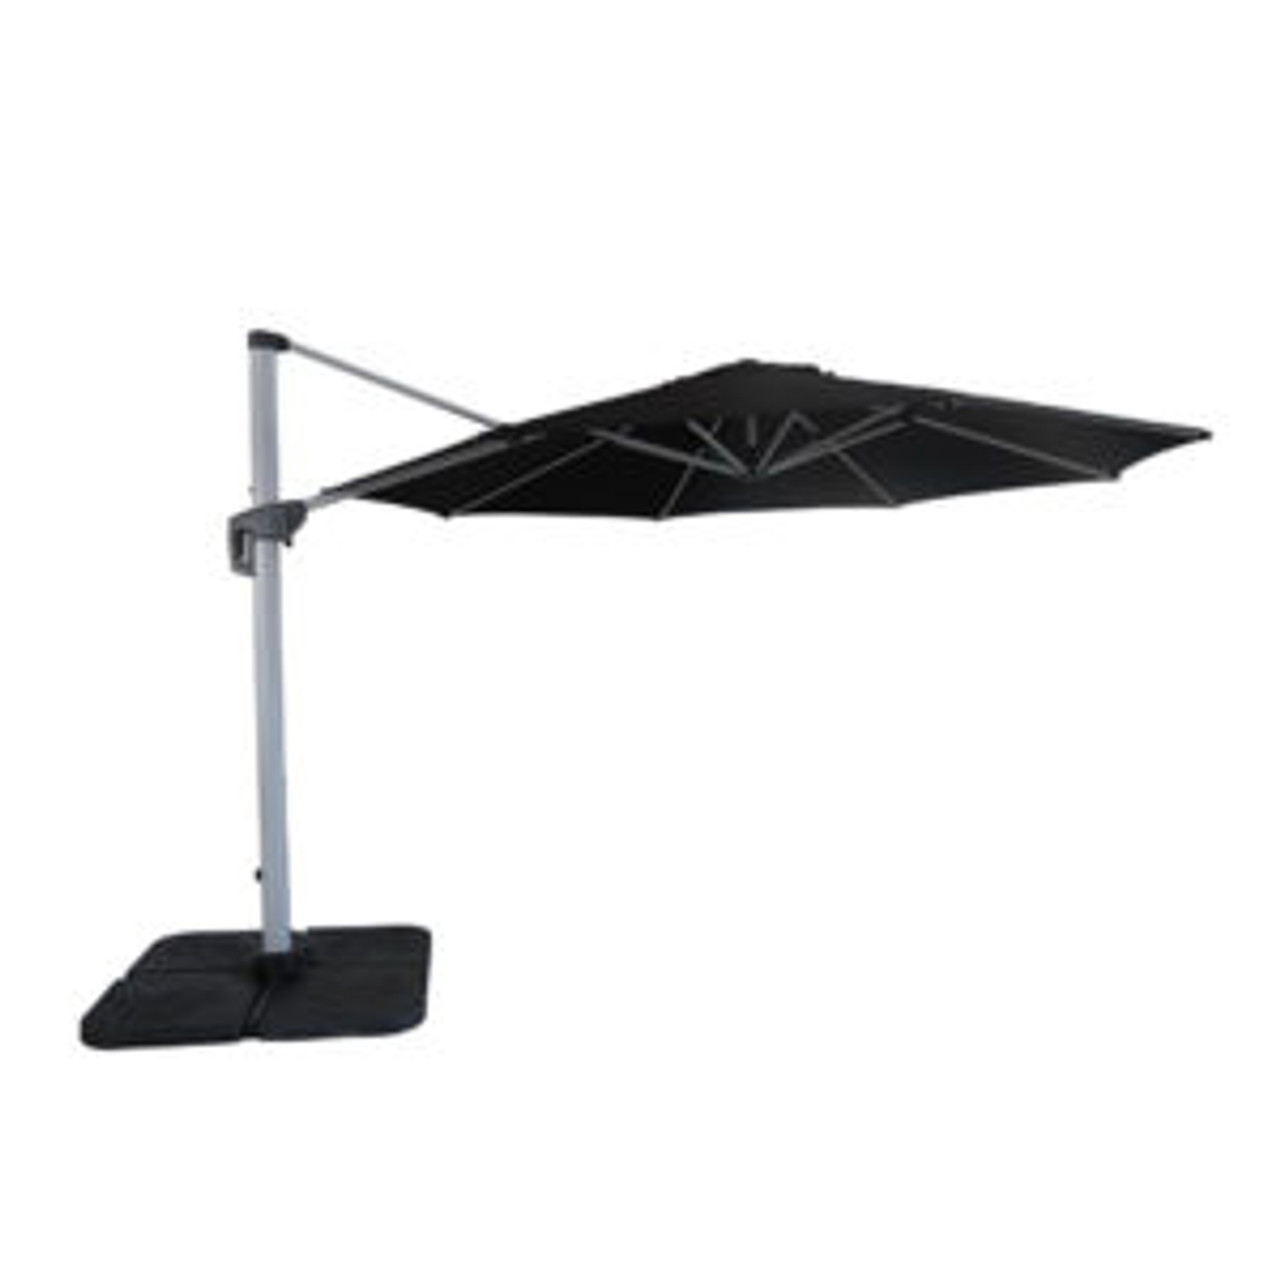 Lethaby3.3m Round Cantilever Umbrella with Olefin Shade